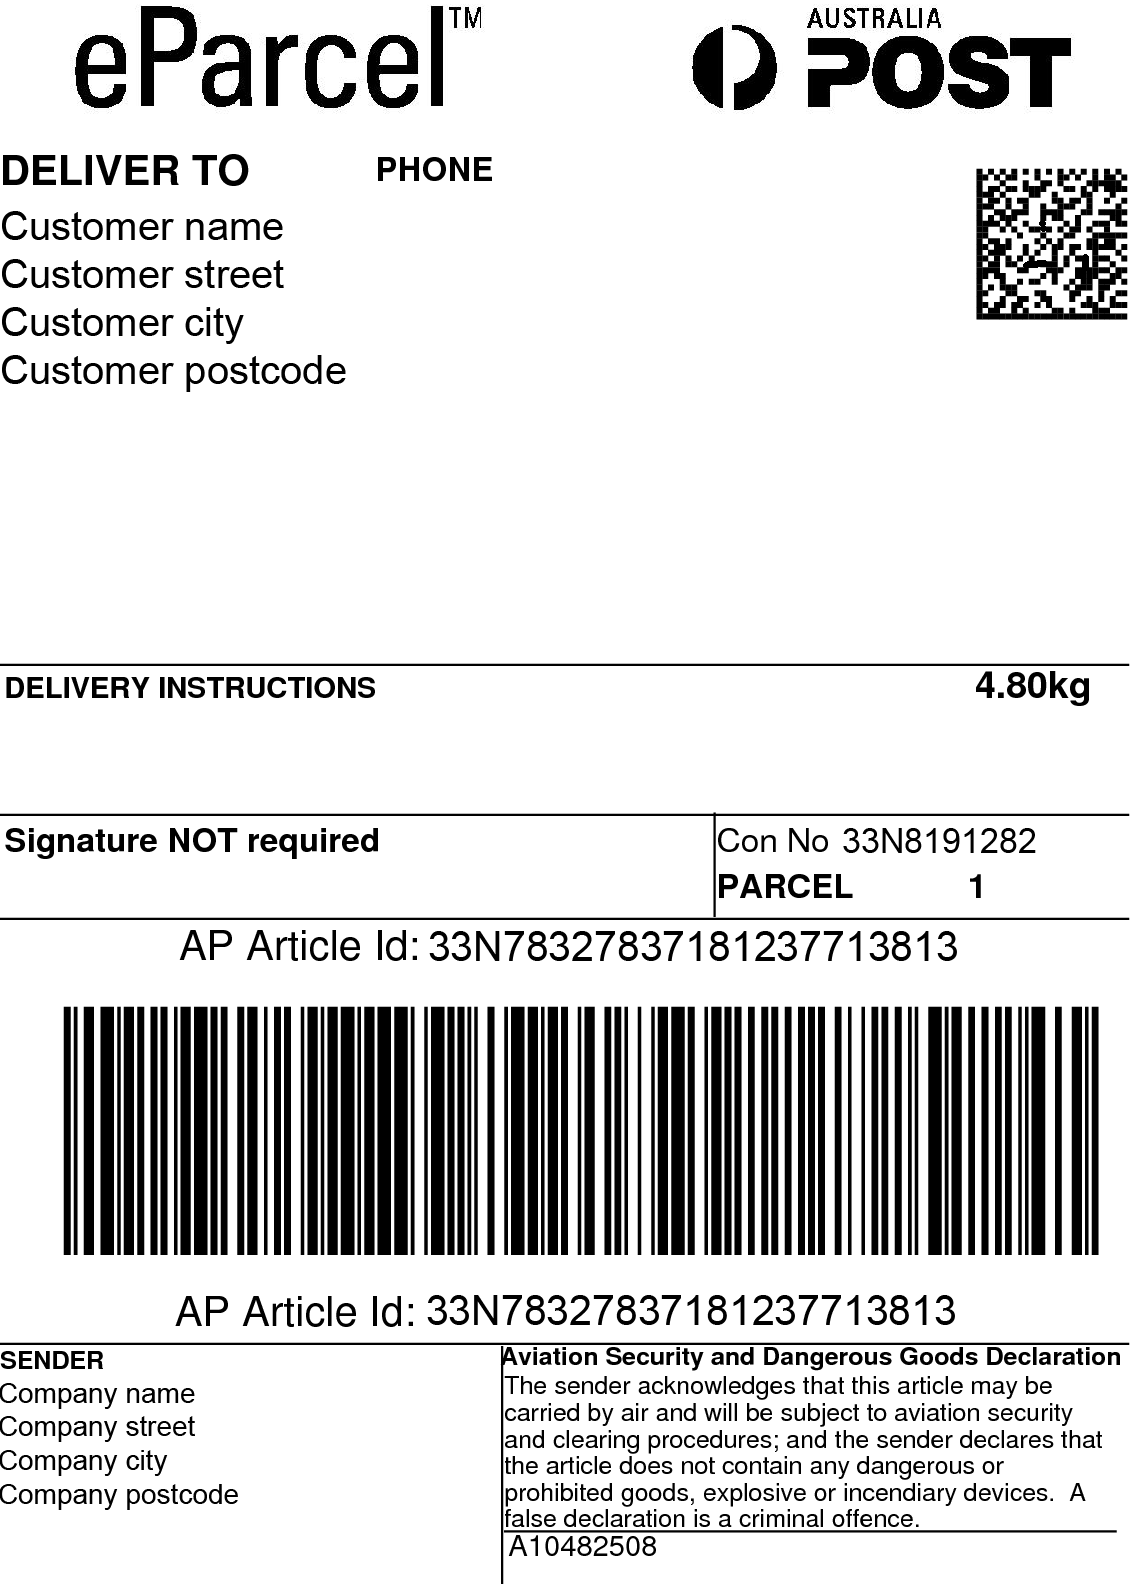 Australia Post Shipping Label